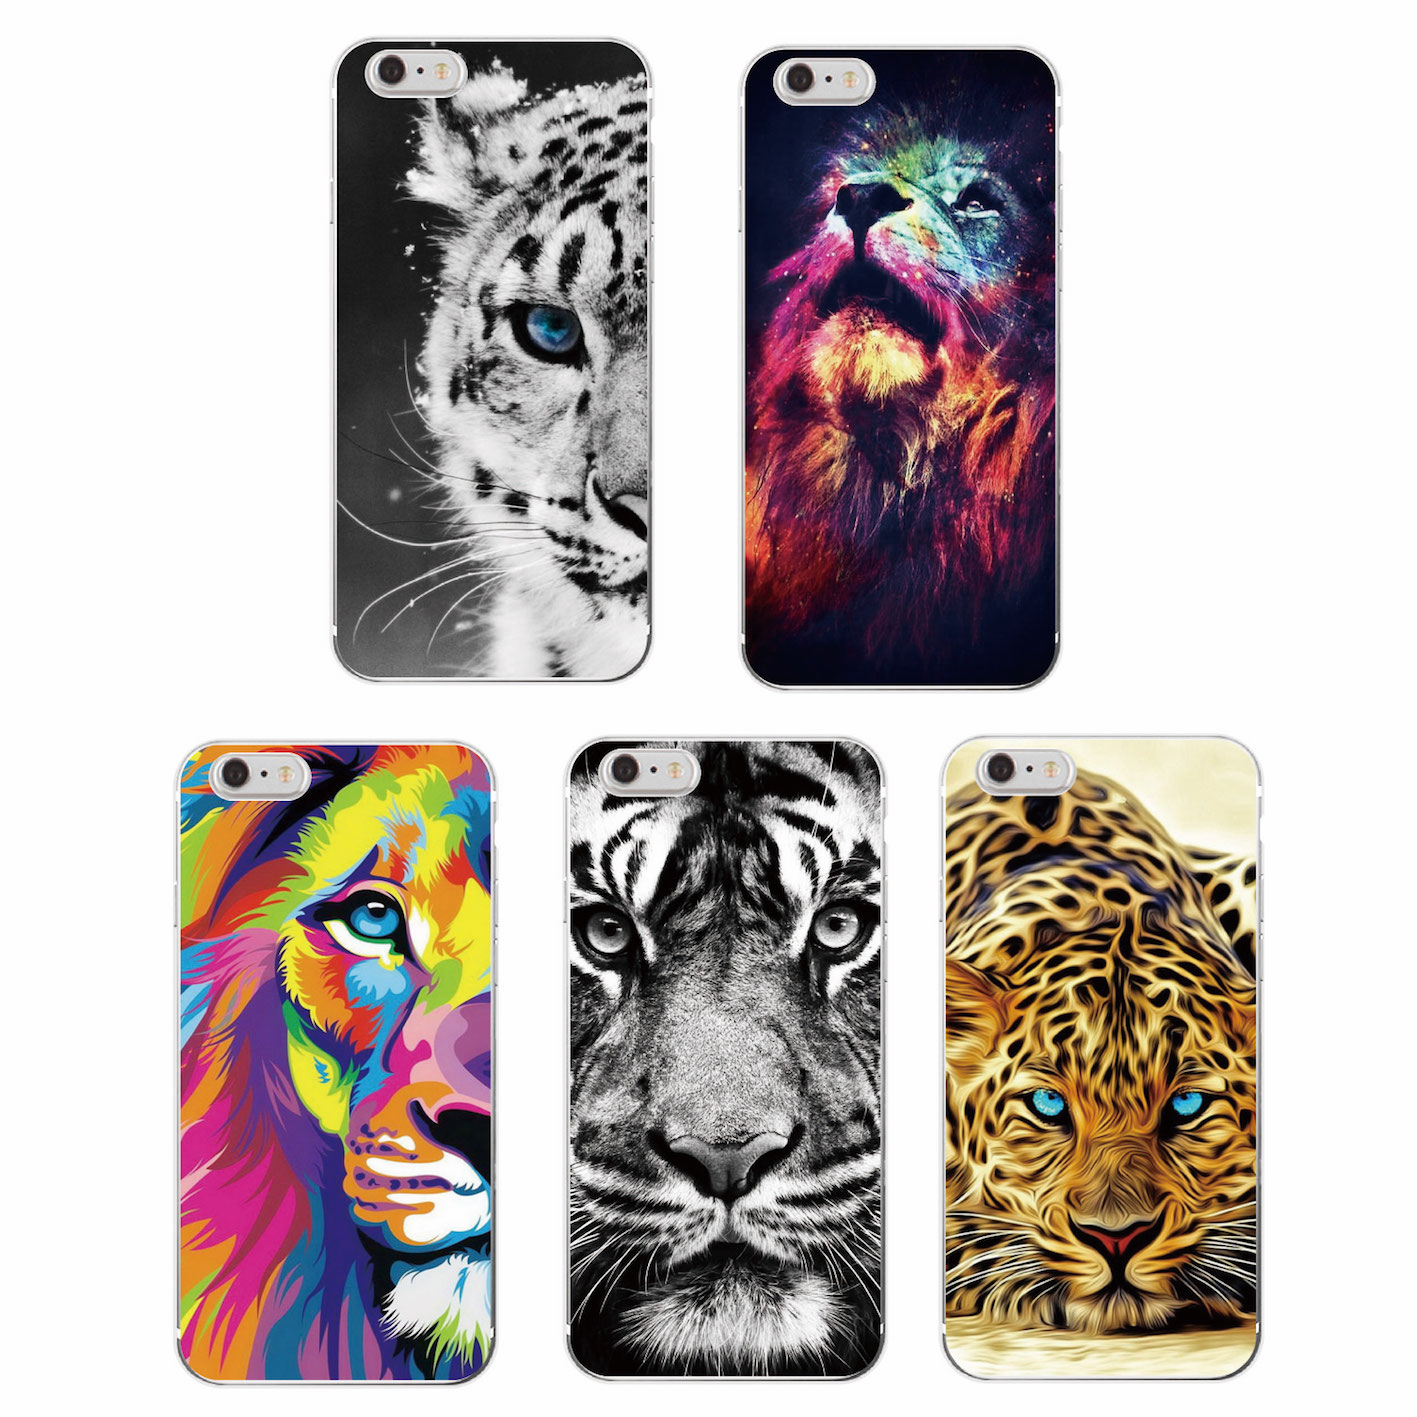 Moda Aslan Tiger pantheri Leopard Soft Case Coque Fundas for iPhone 11 7 7Plus 6 6S 5S 8 8Plus X XS Max SAMSUNG GALSXY S8 S8P